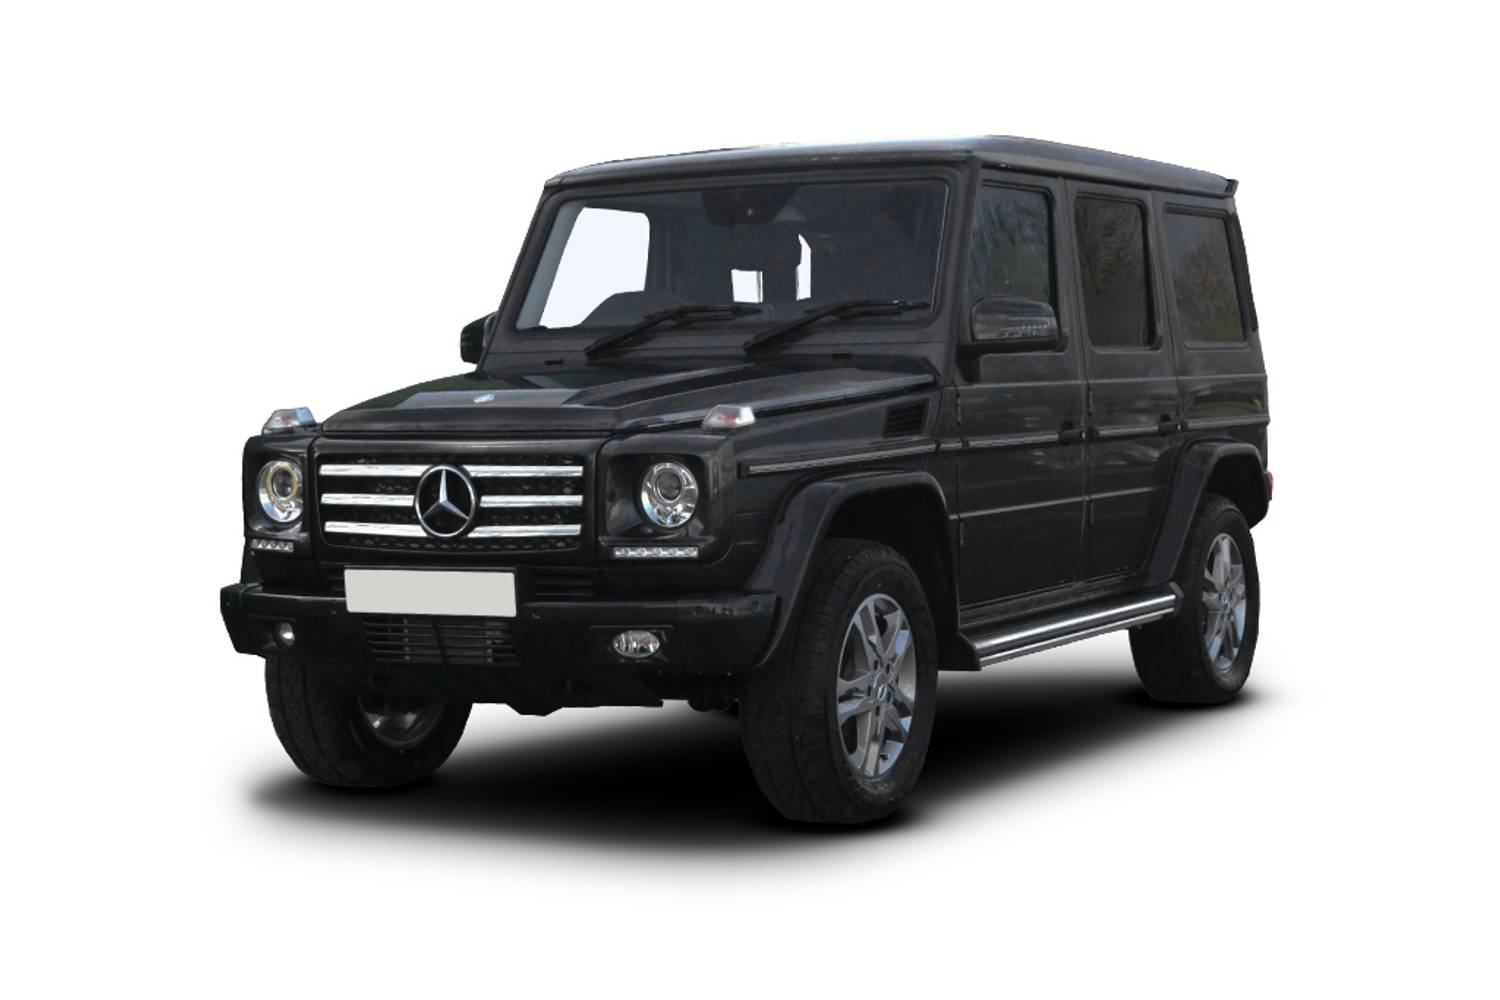 New mercedes benz g class amg station wagon special for Mercedes benz baby g class